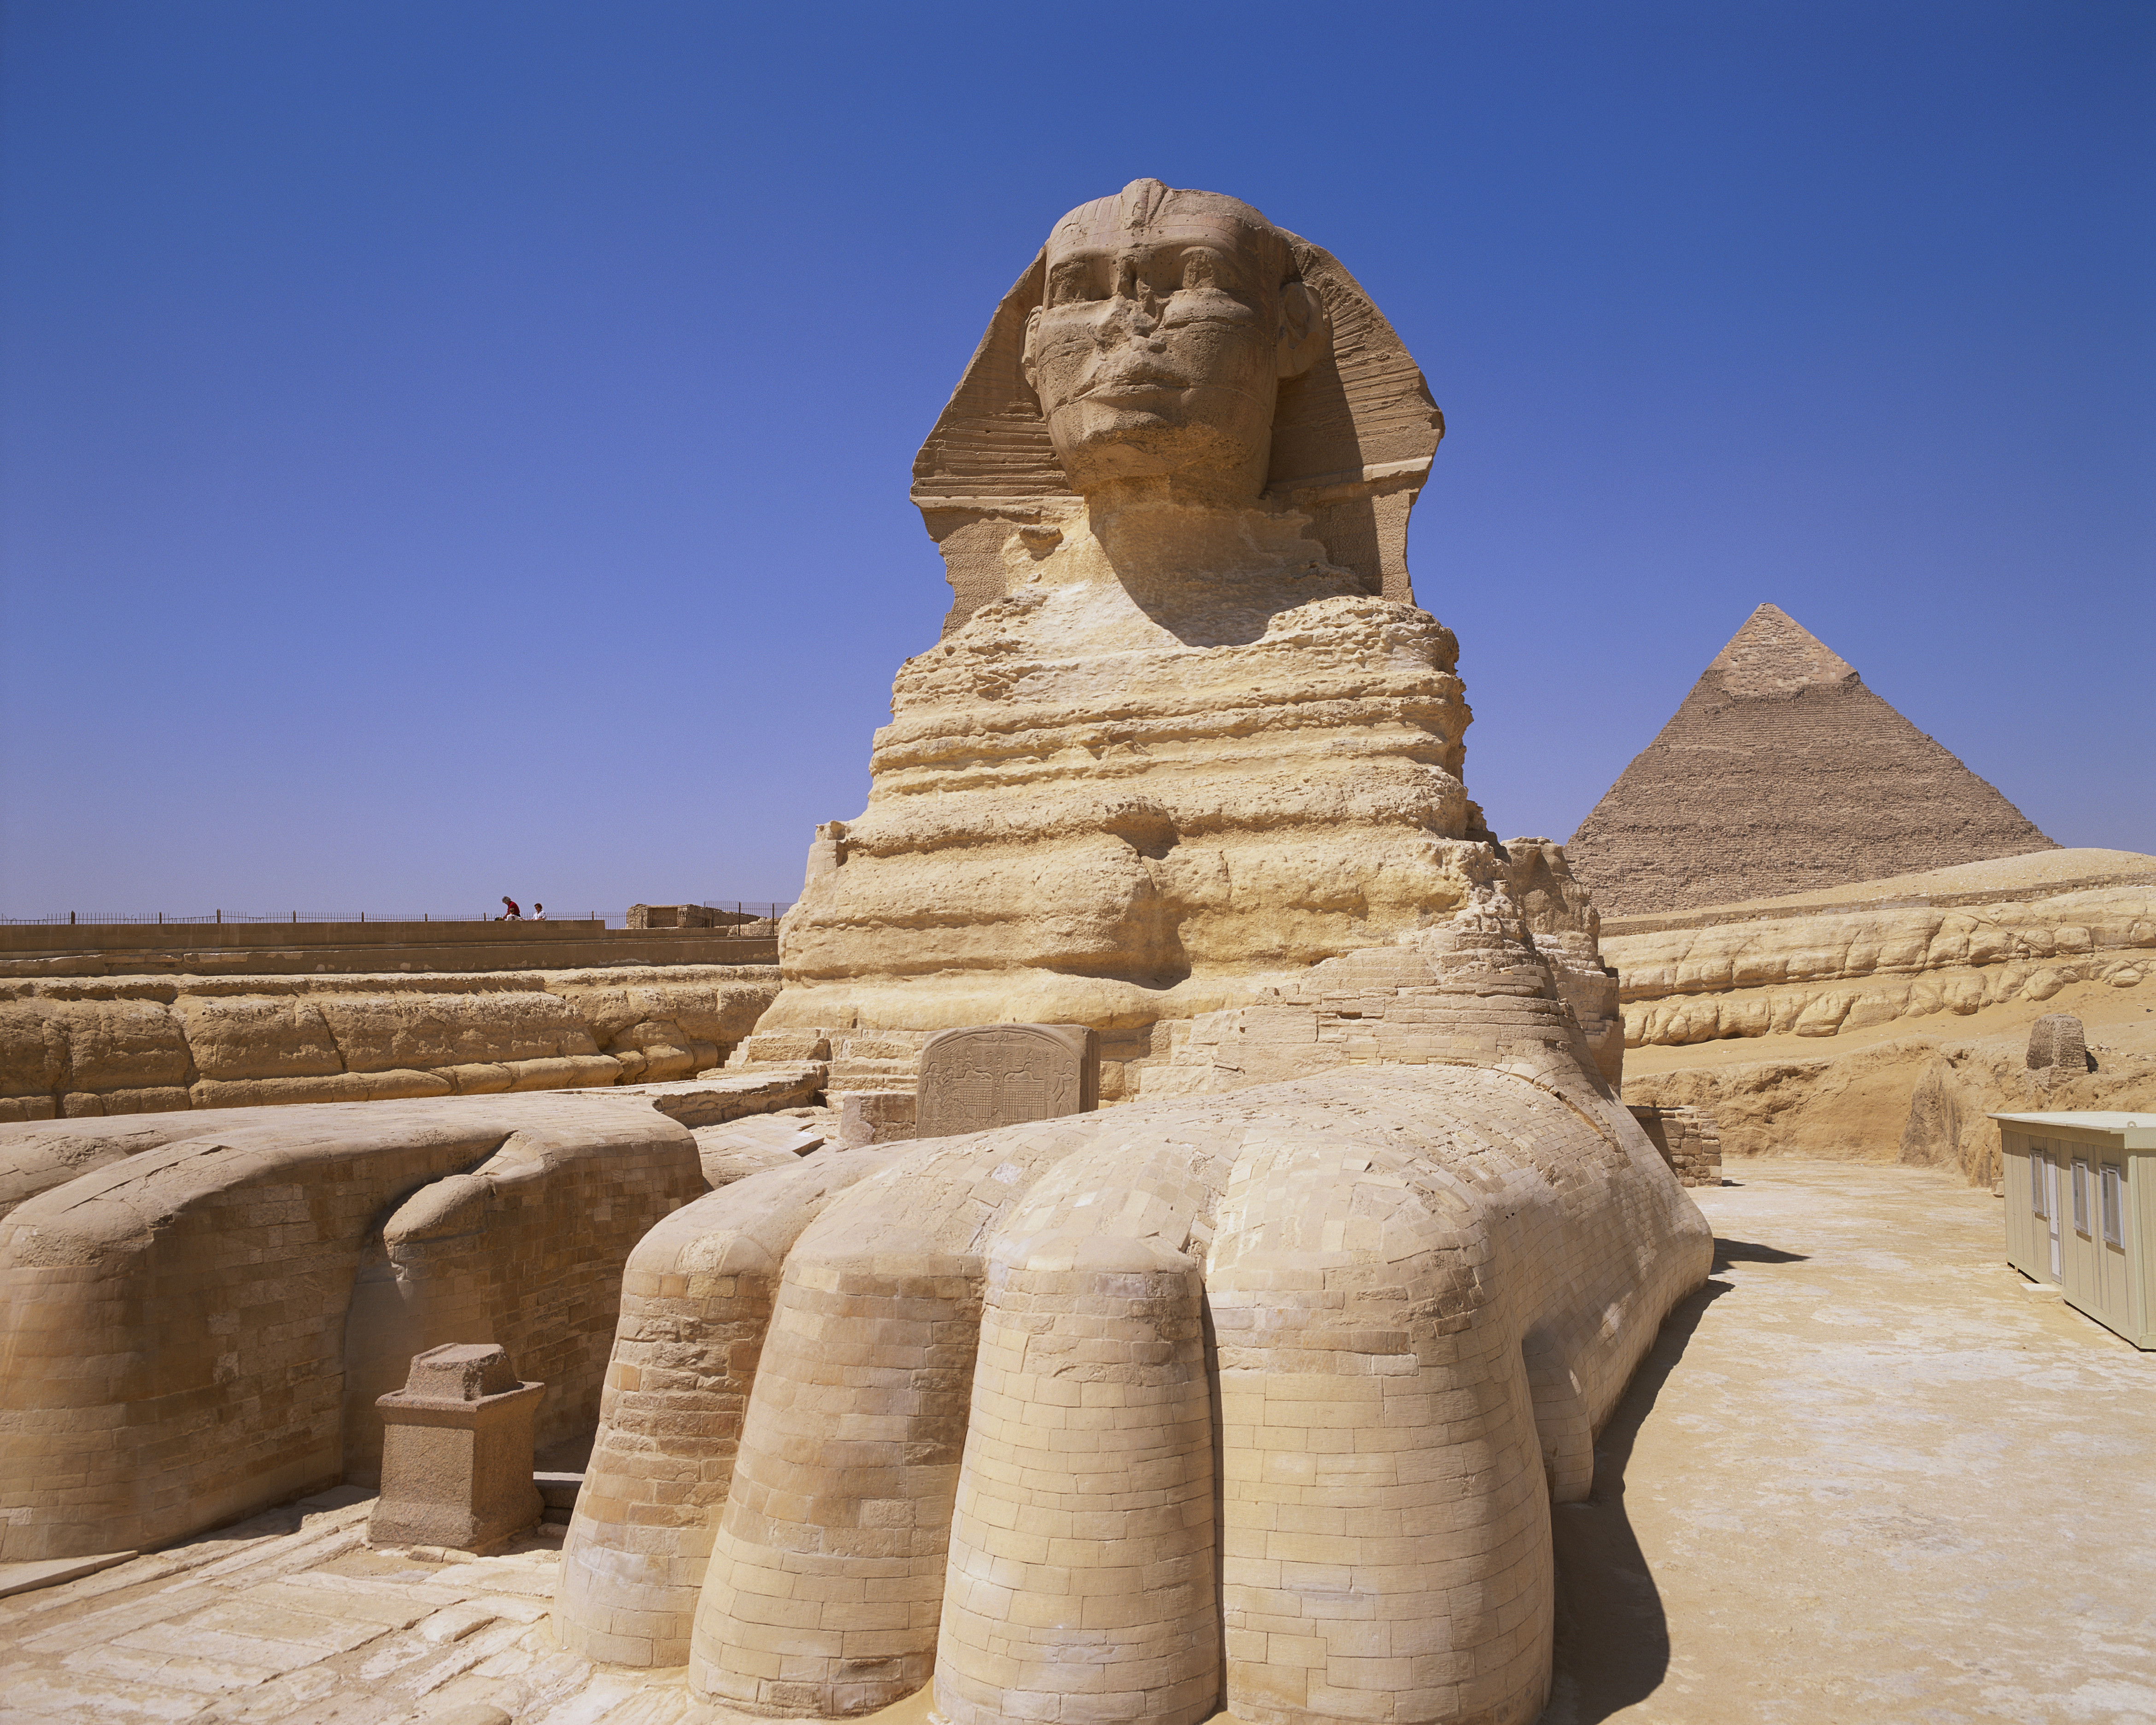 great-sphinx - Egyptian Pyramids Pictures - Ancient Egypt - HISTORY.com